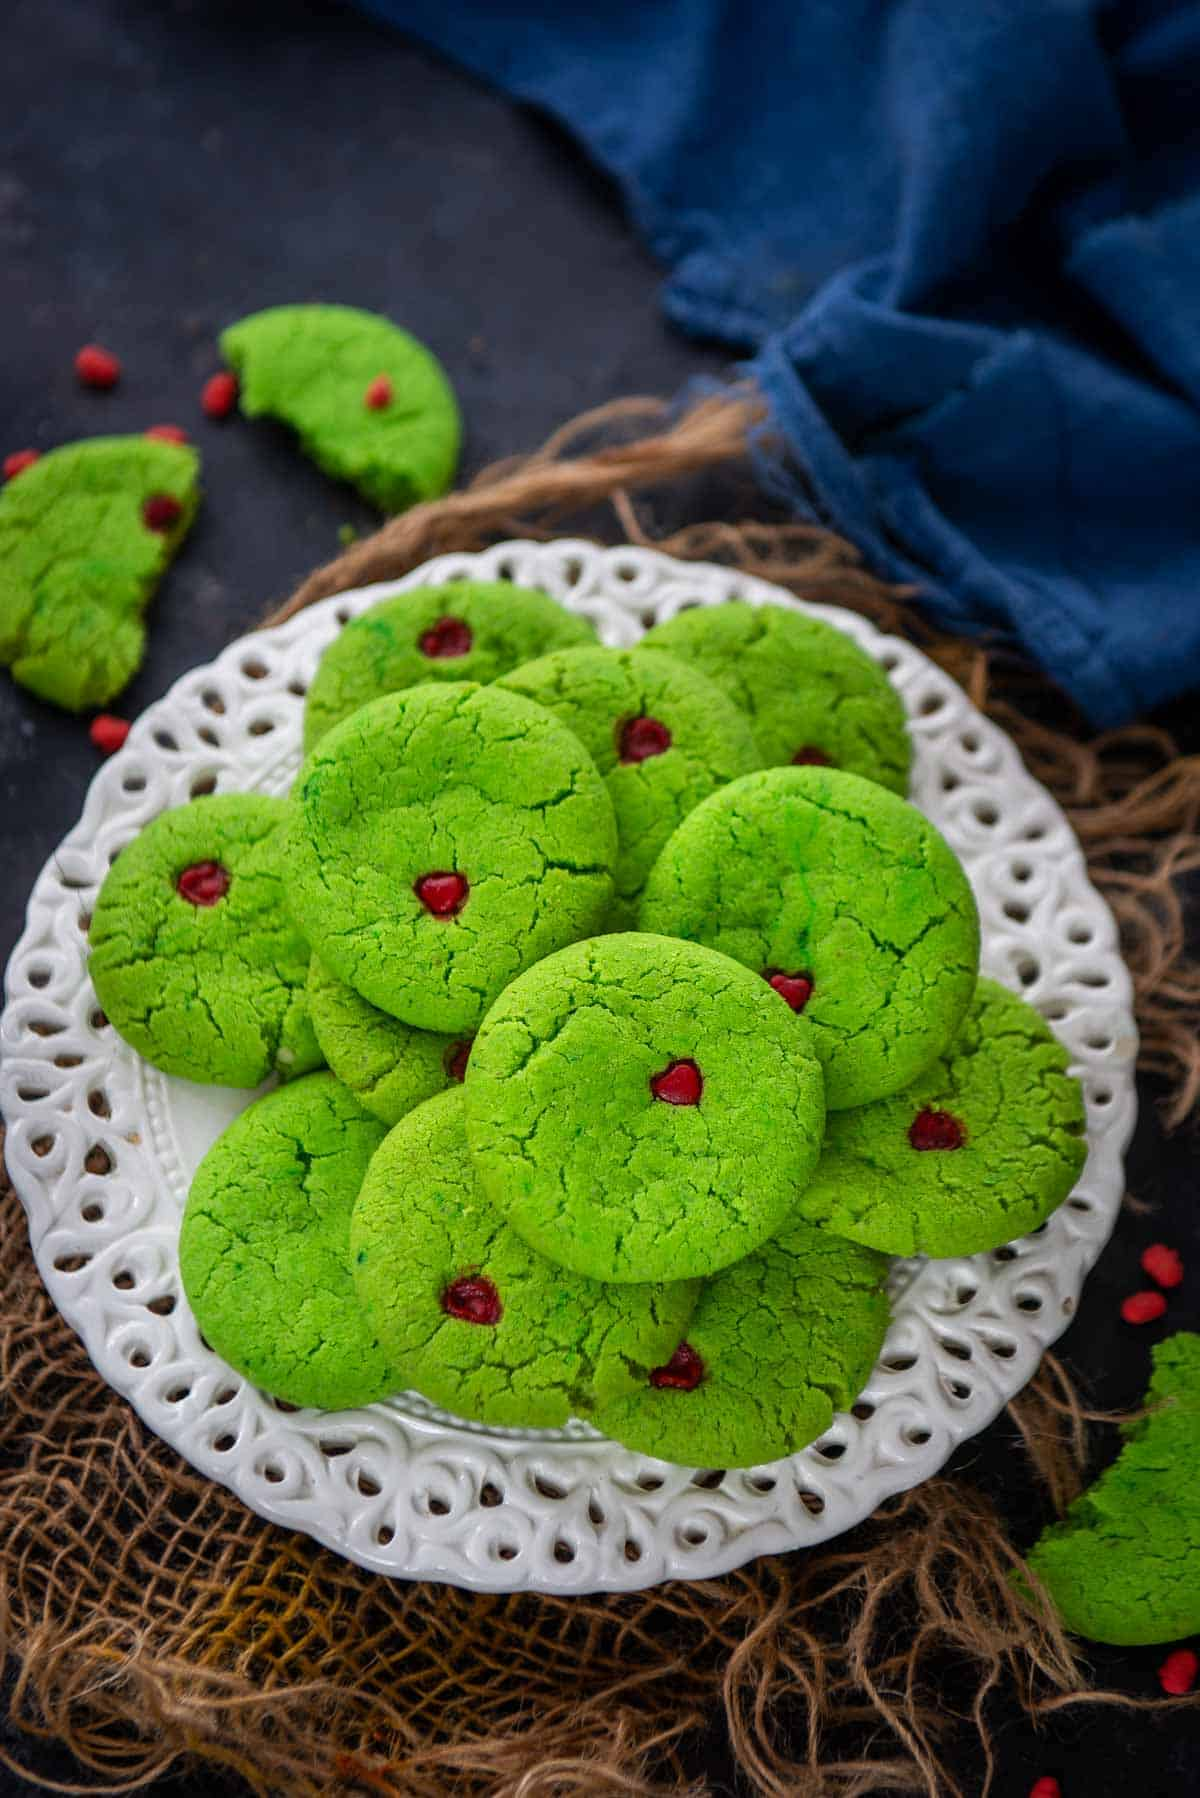 Grinch Cookies served on a plate.